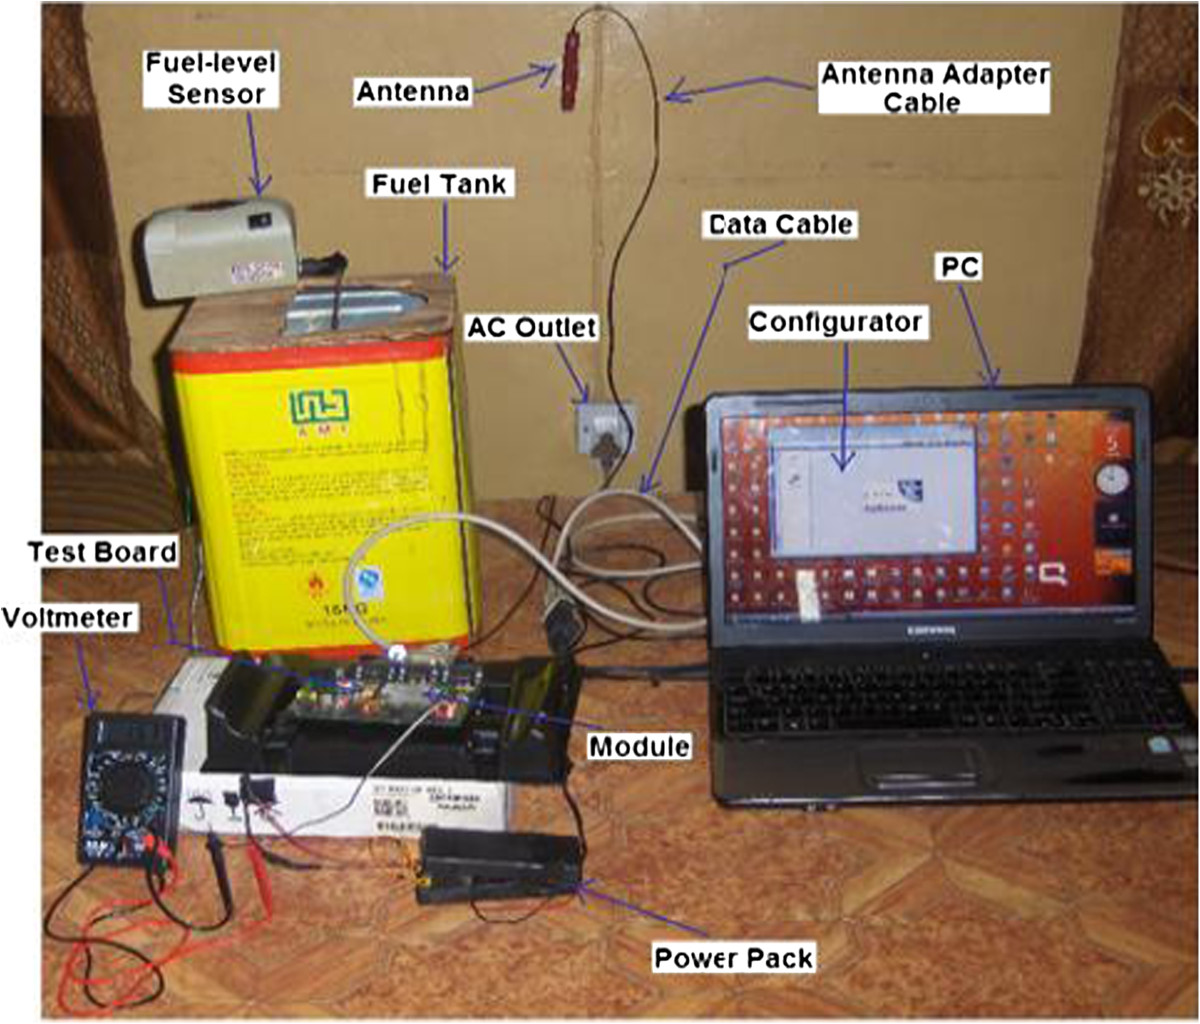 Design Construction And Implementation Of A Remote Fuel Level Water Alarm Sensor Module Liquid Circuit Board Open Image In New Window